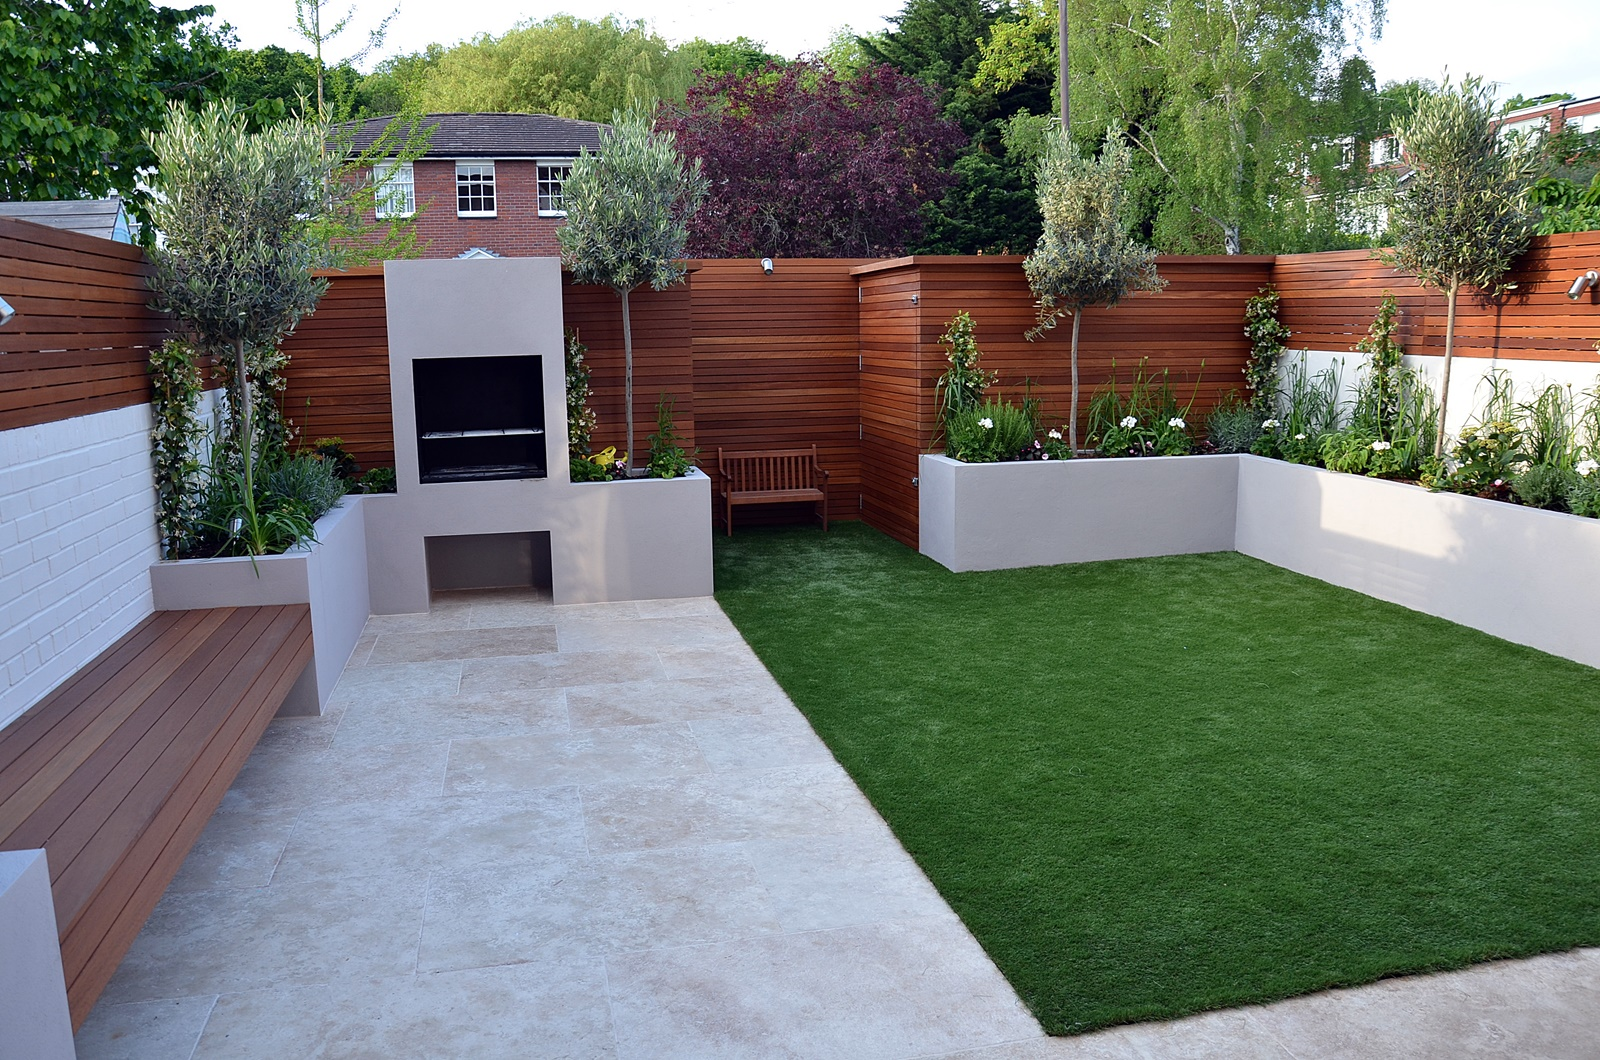 Modern garden design fulham chelsea clapham battersea for Contemporary garden design ideas